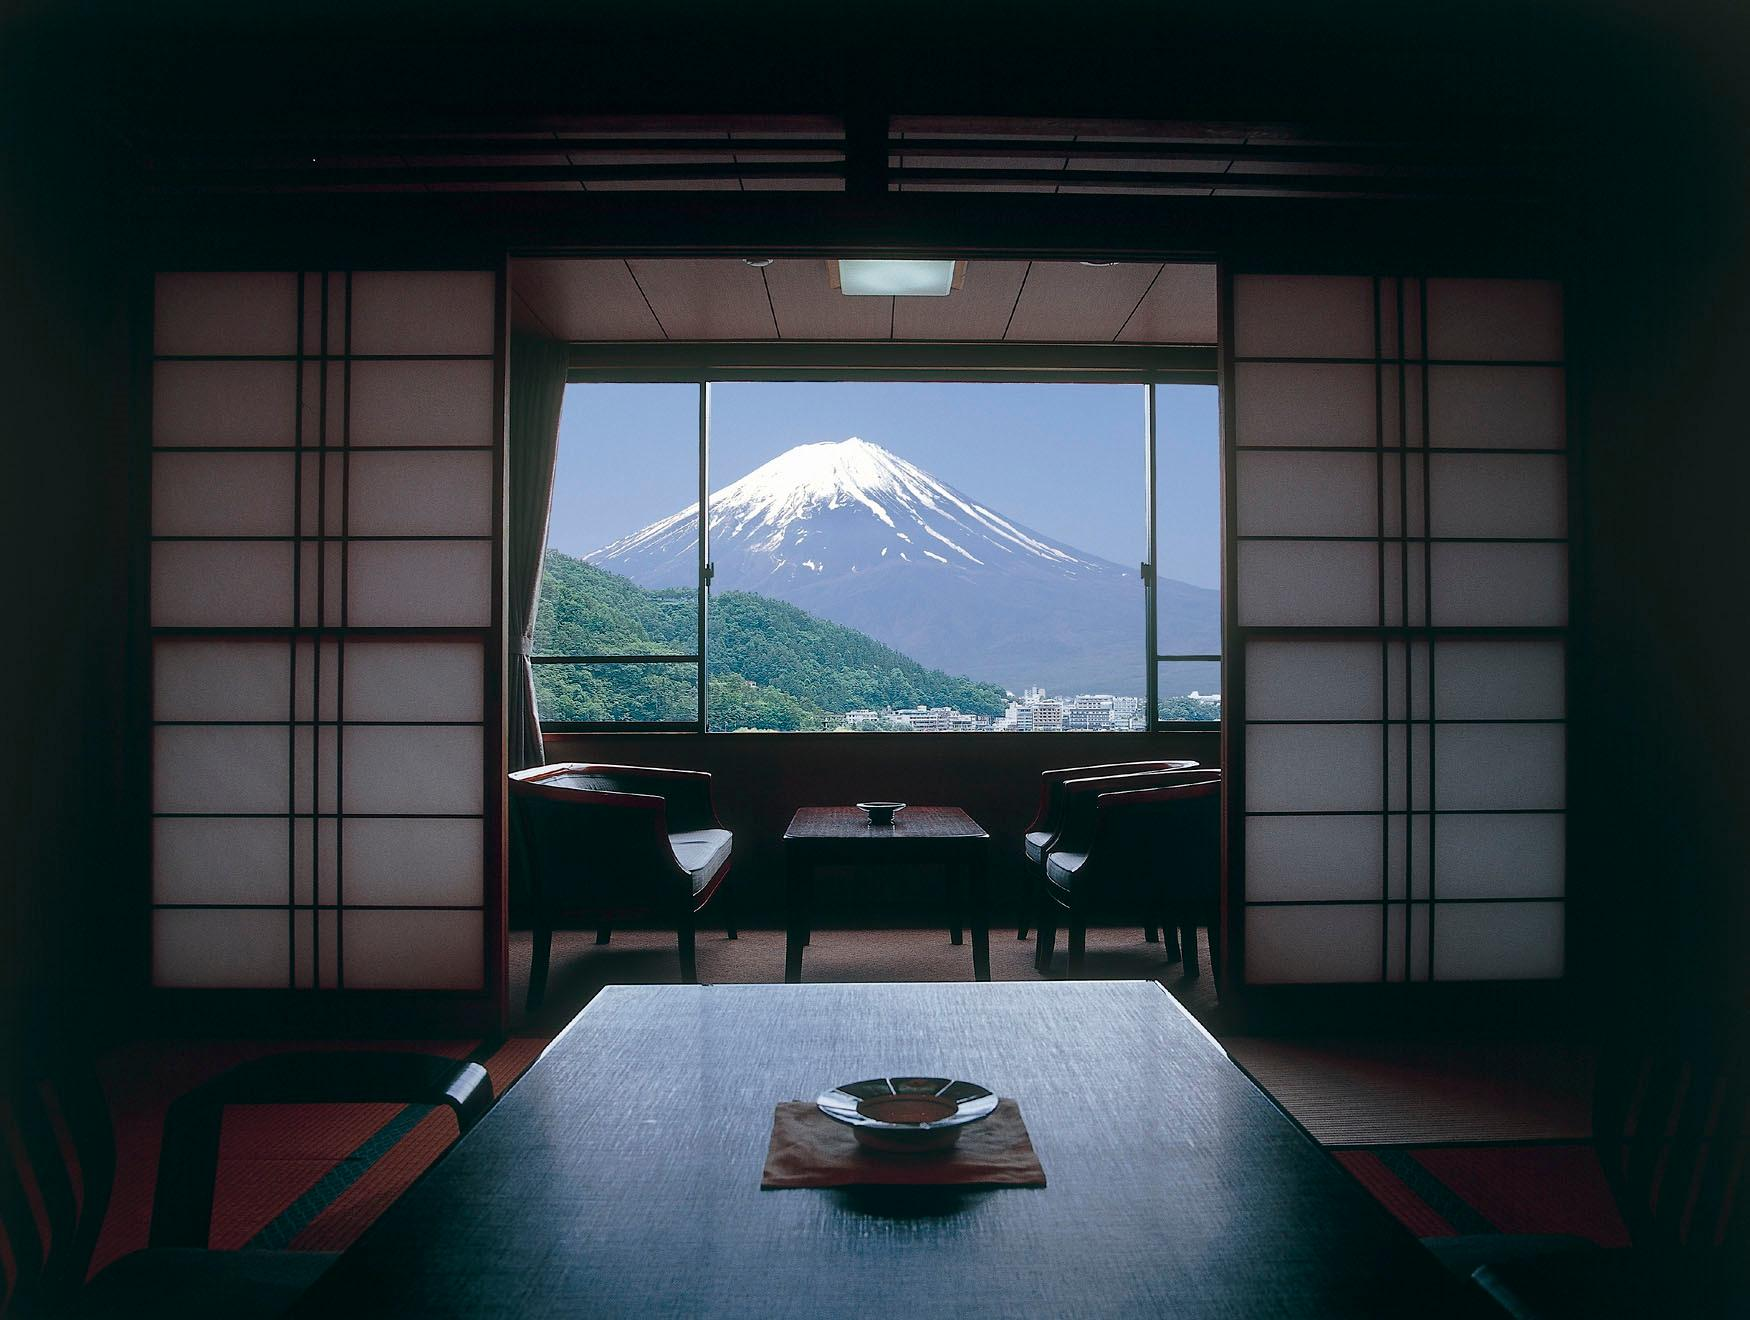 Deluxe Mount Fuji View Japanese Style Room